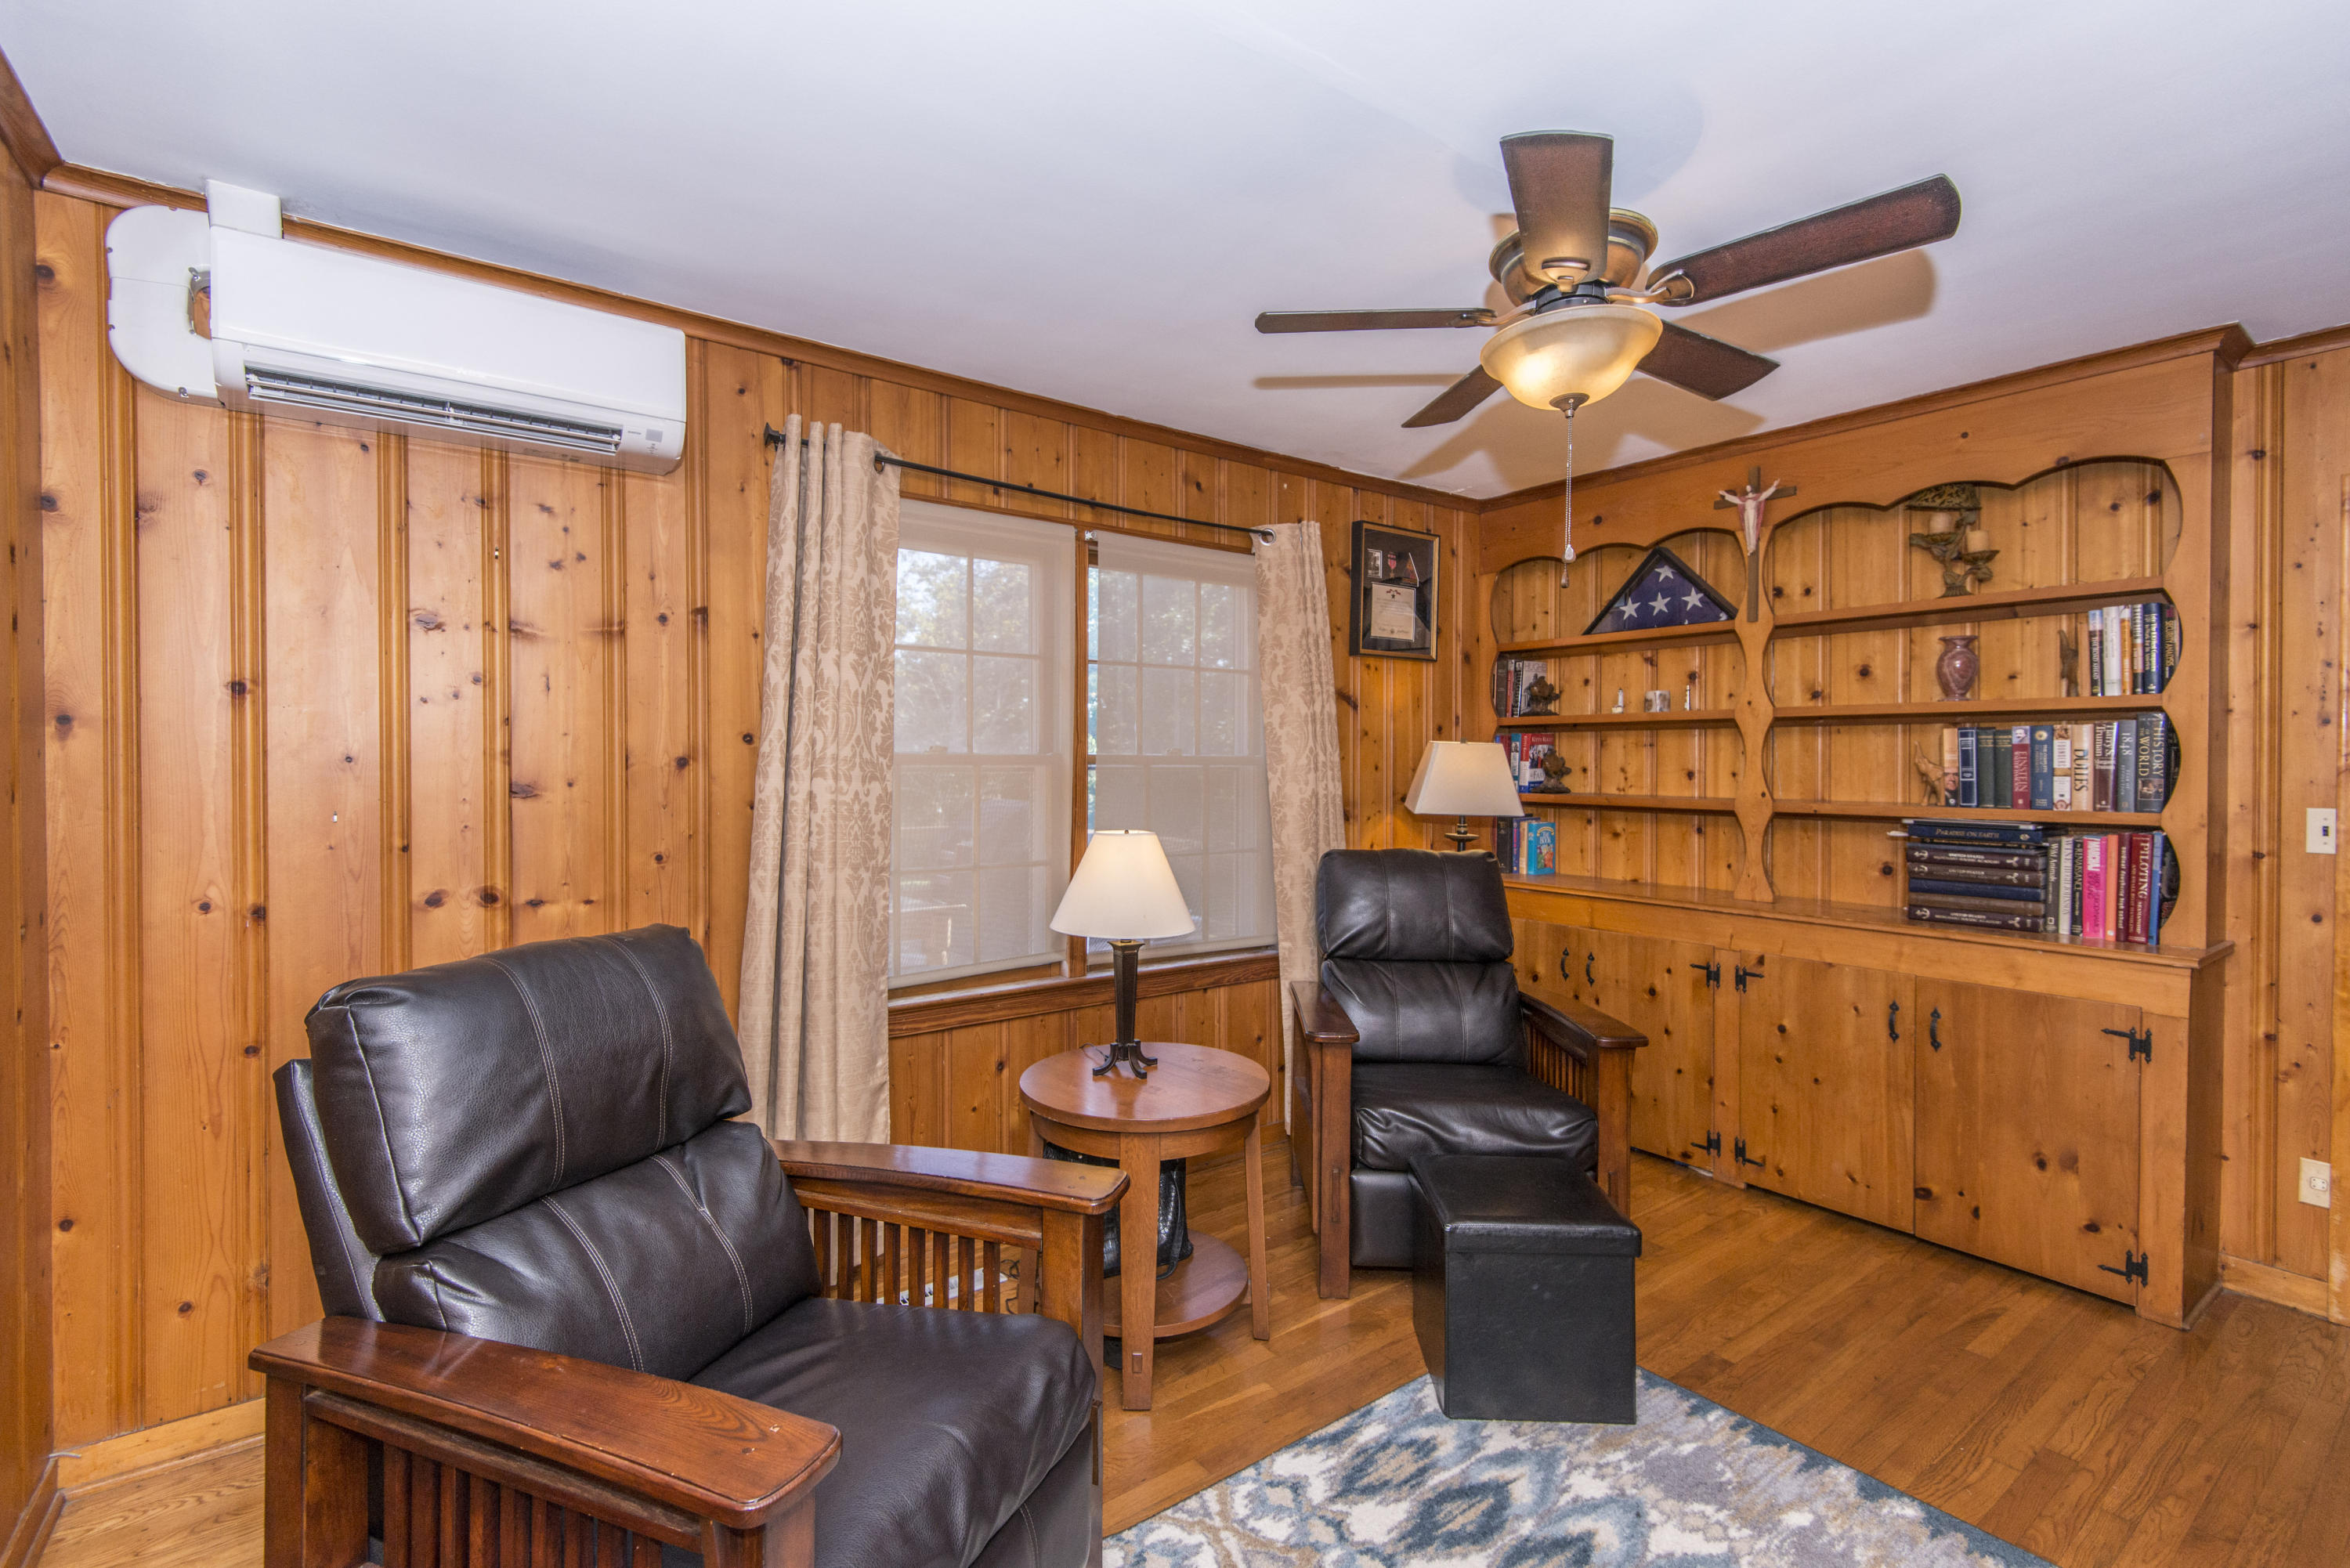 Home for sale 134 Chadwick Drive, South Windermere, West Ashley, SC